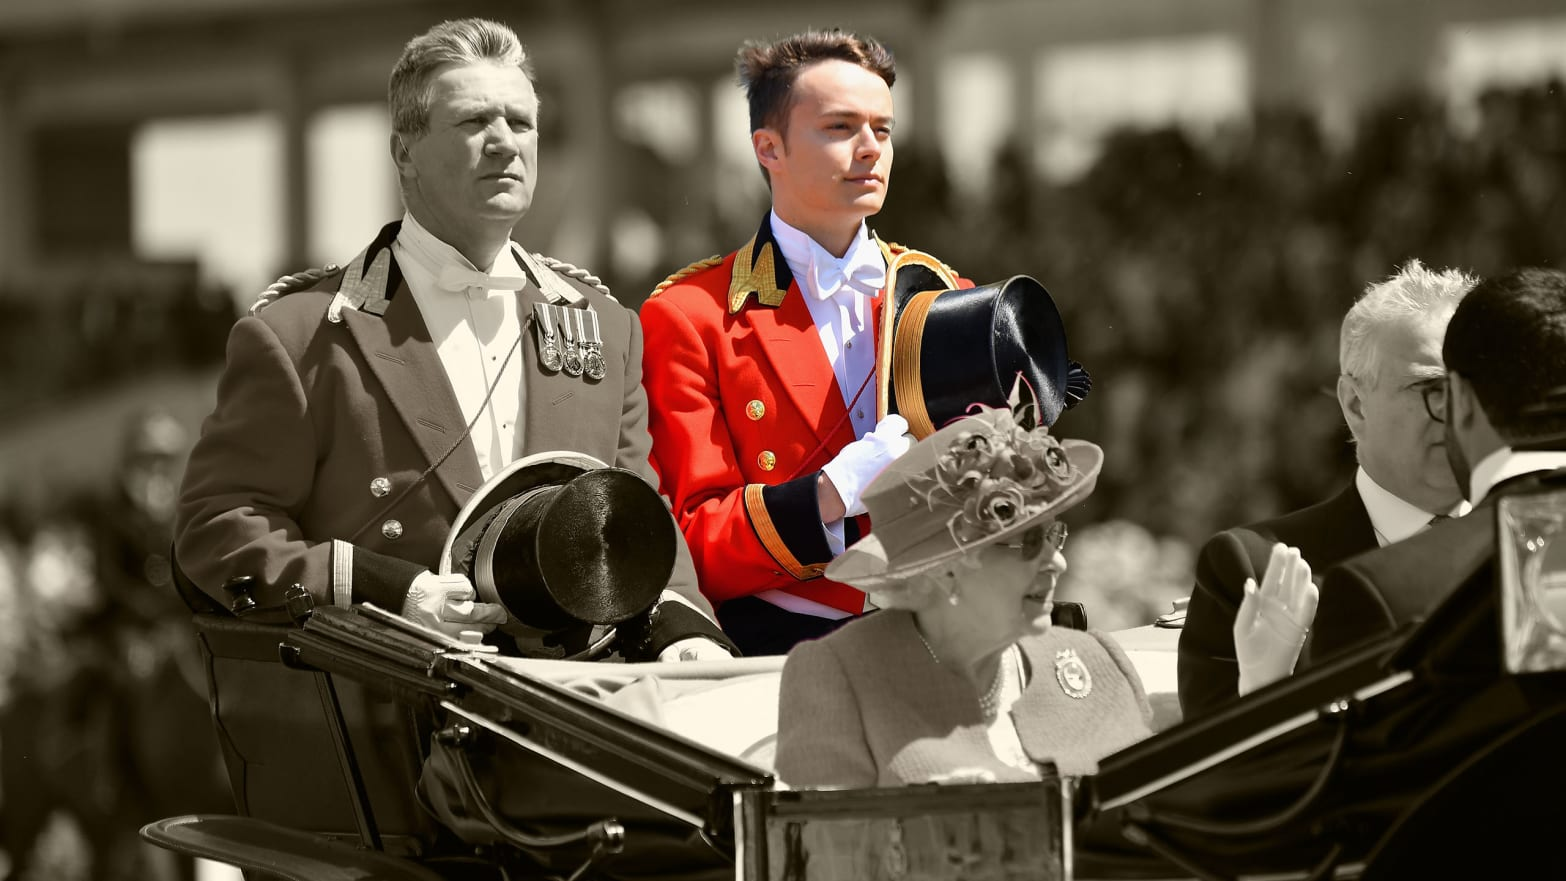 Roberts Auto Service >> Queen's First Out-Gay Footman Quits Amid Homophobia ...